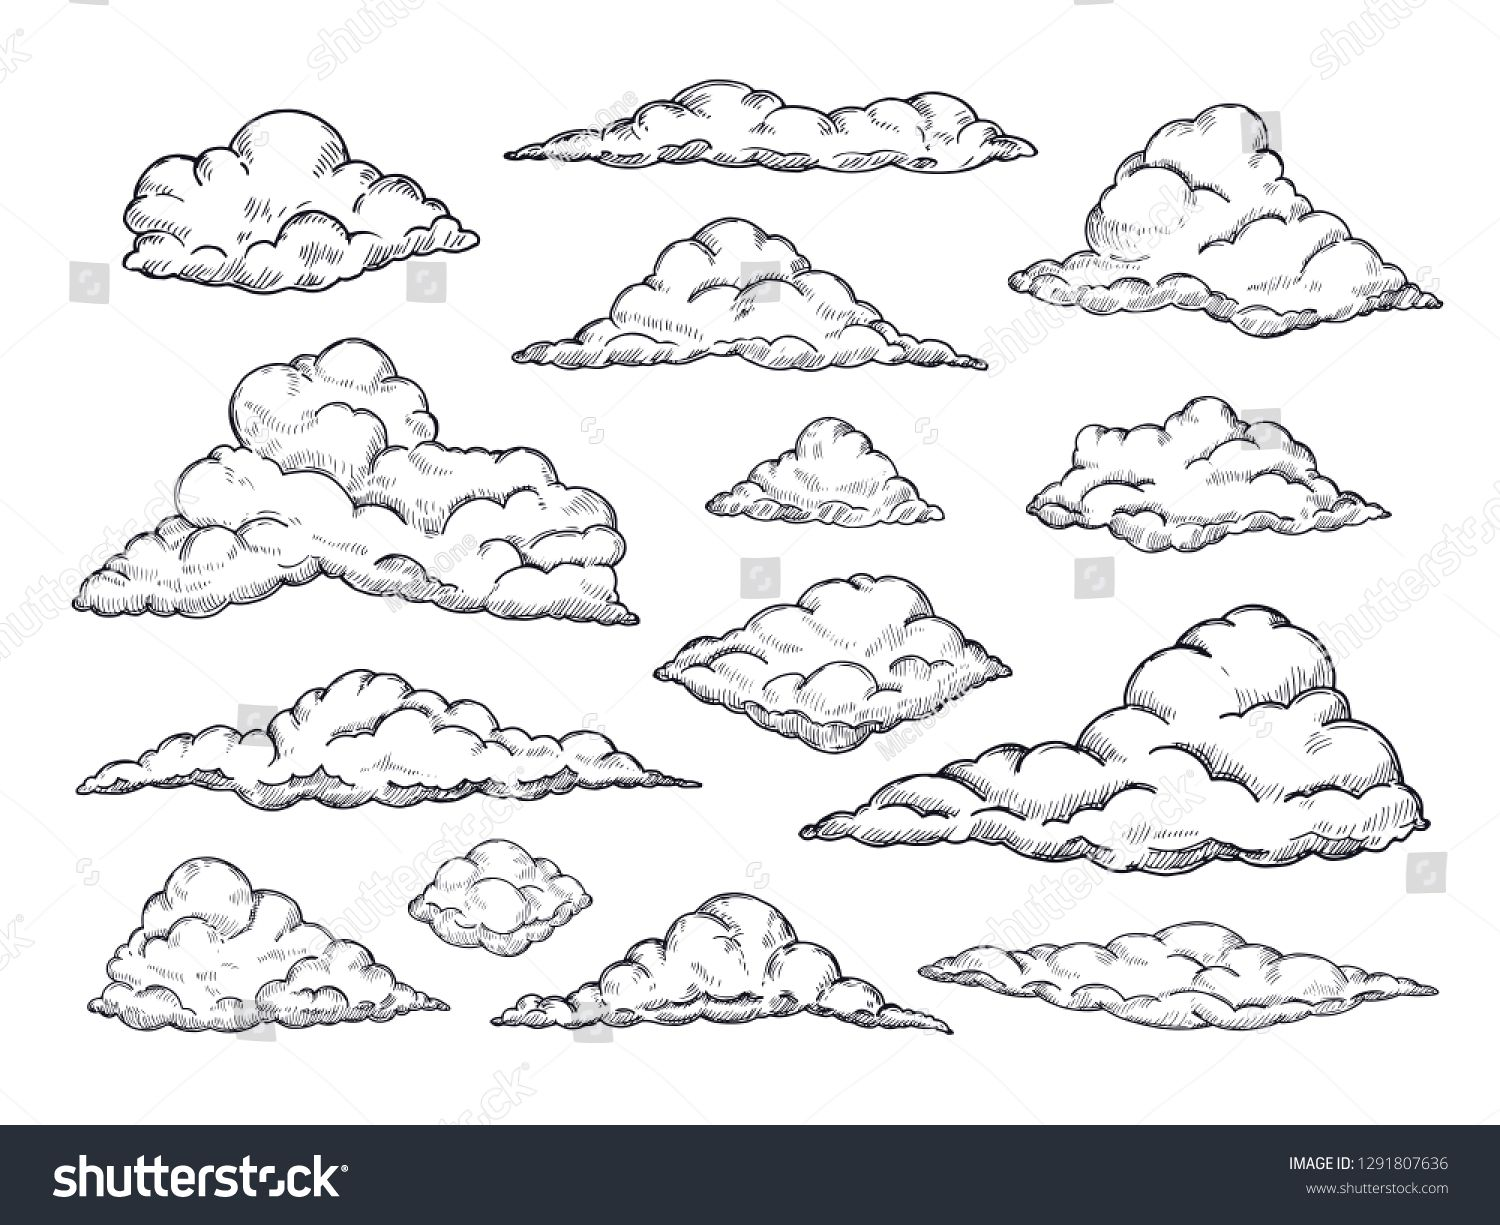 Sketch Clouds Hand Drawn Sky Cloudscape Outline Sketching Cloud